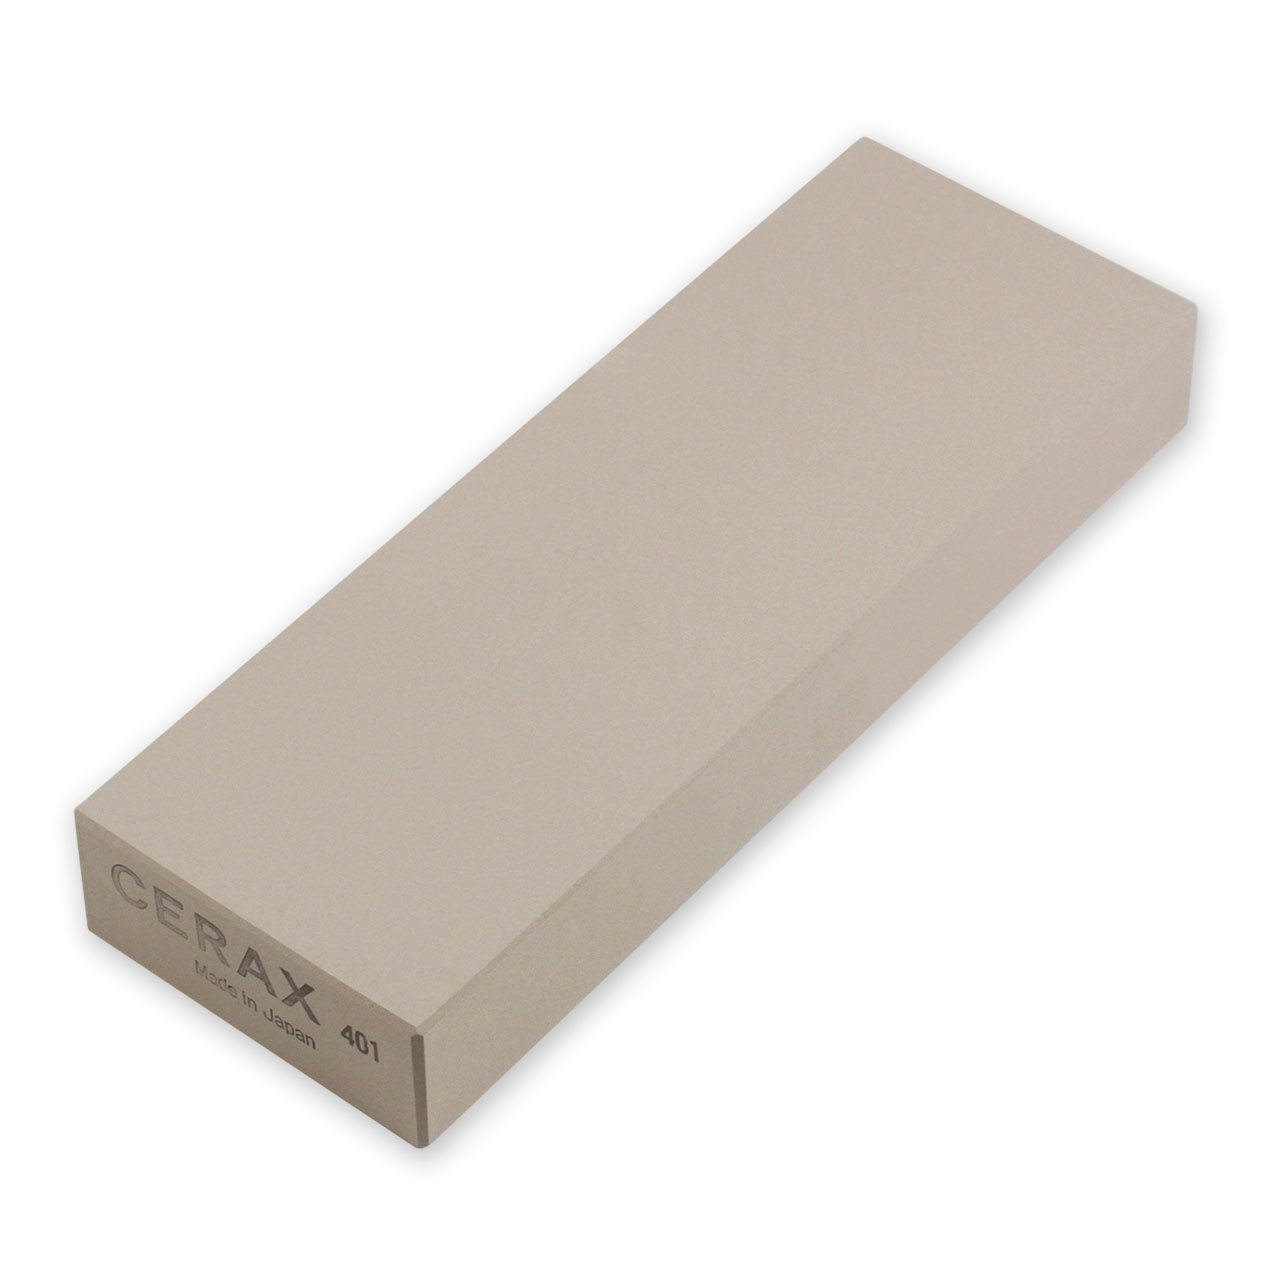 Suehiro New Cerax Sharpening Stone